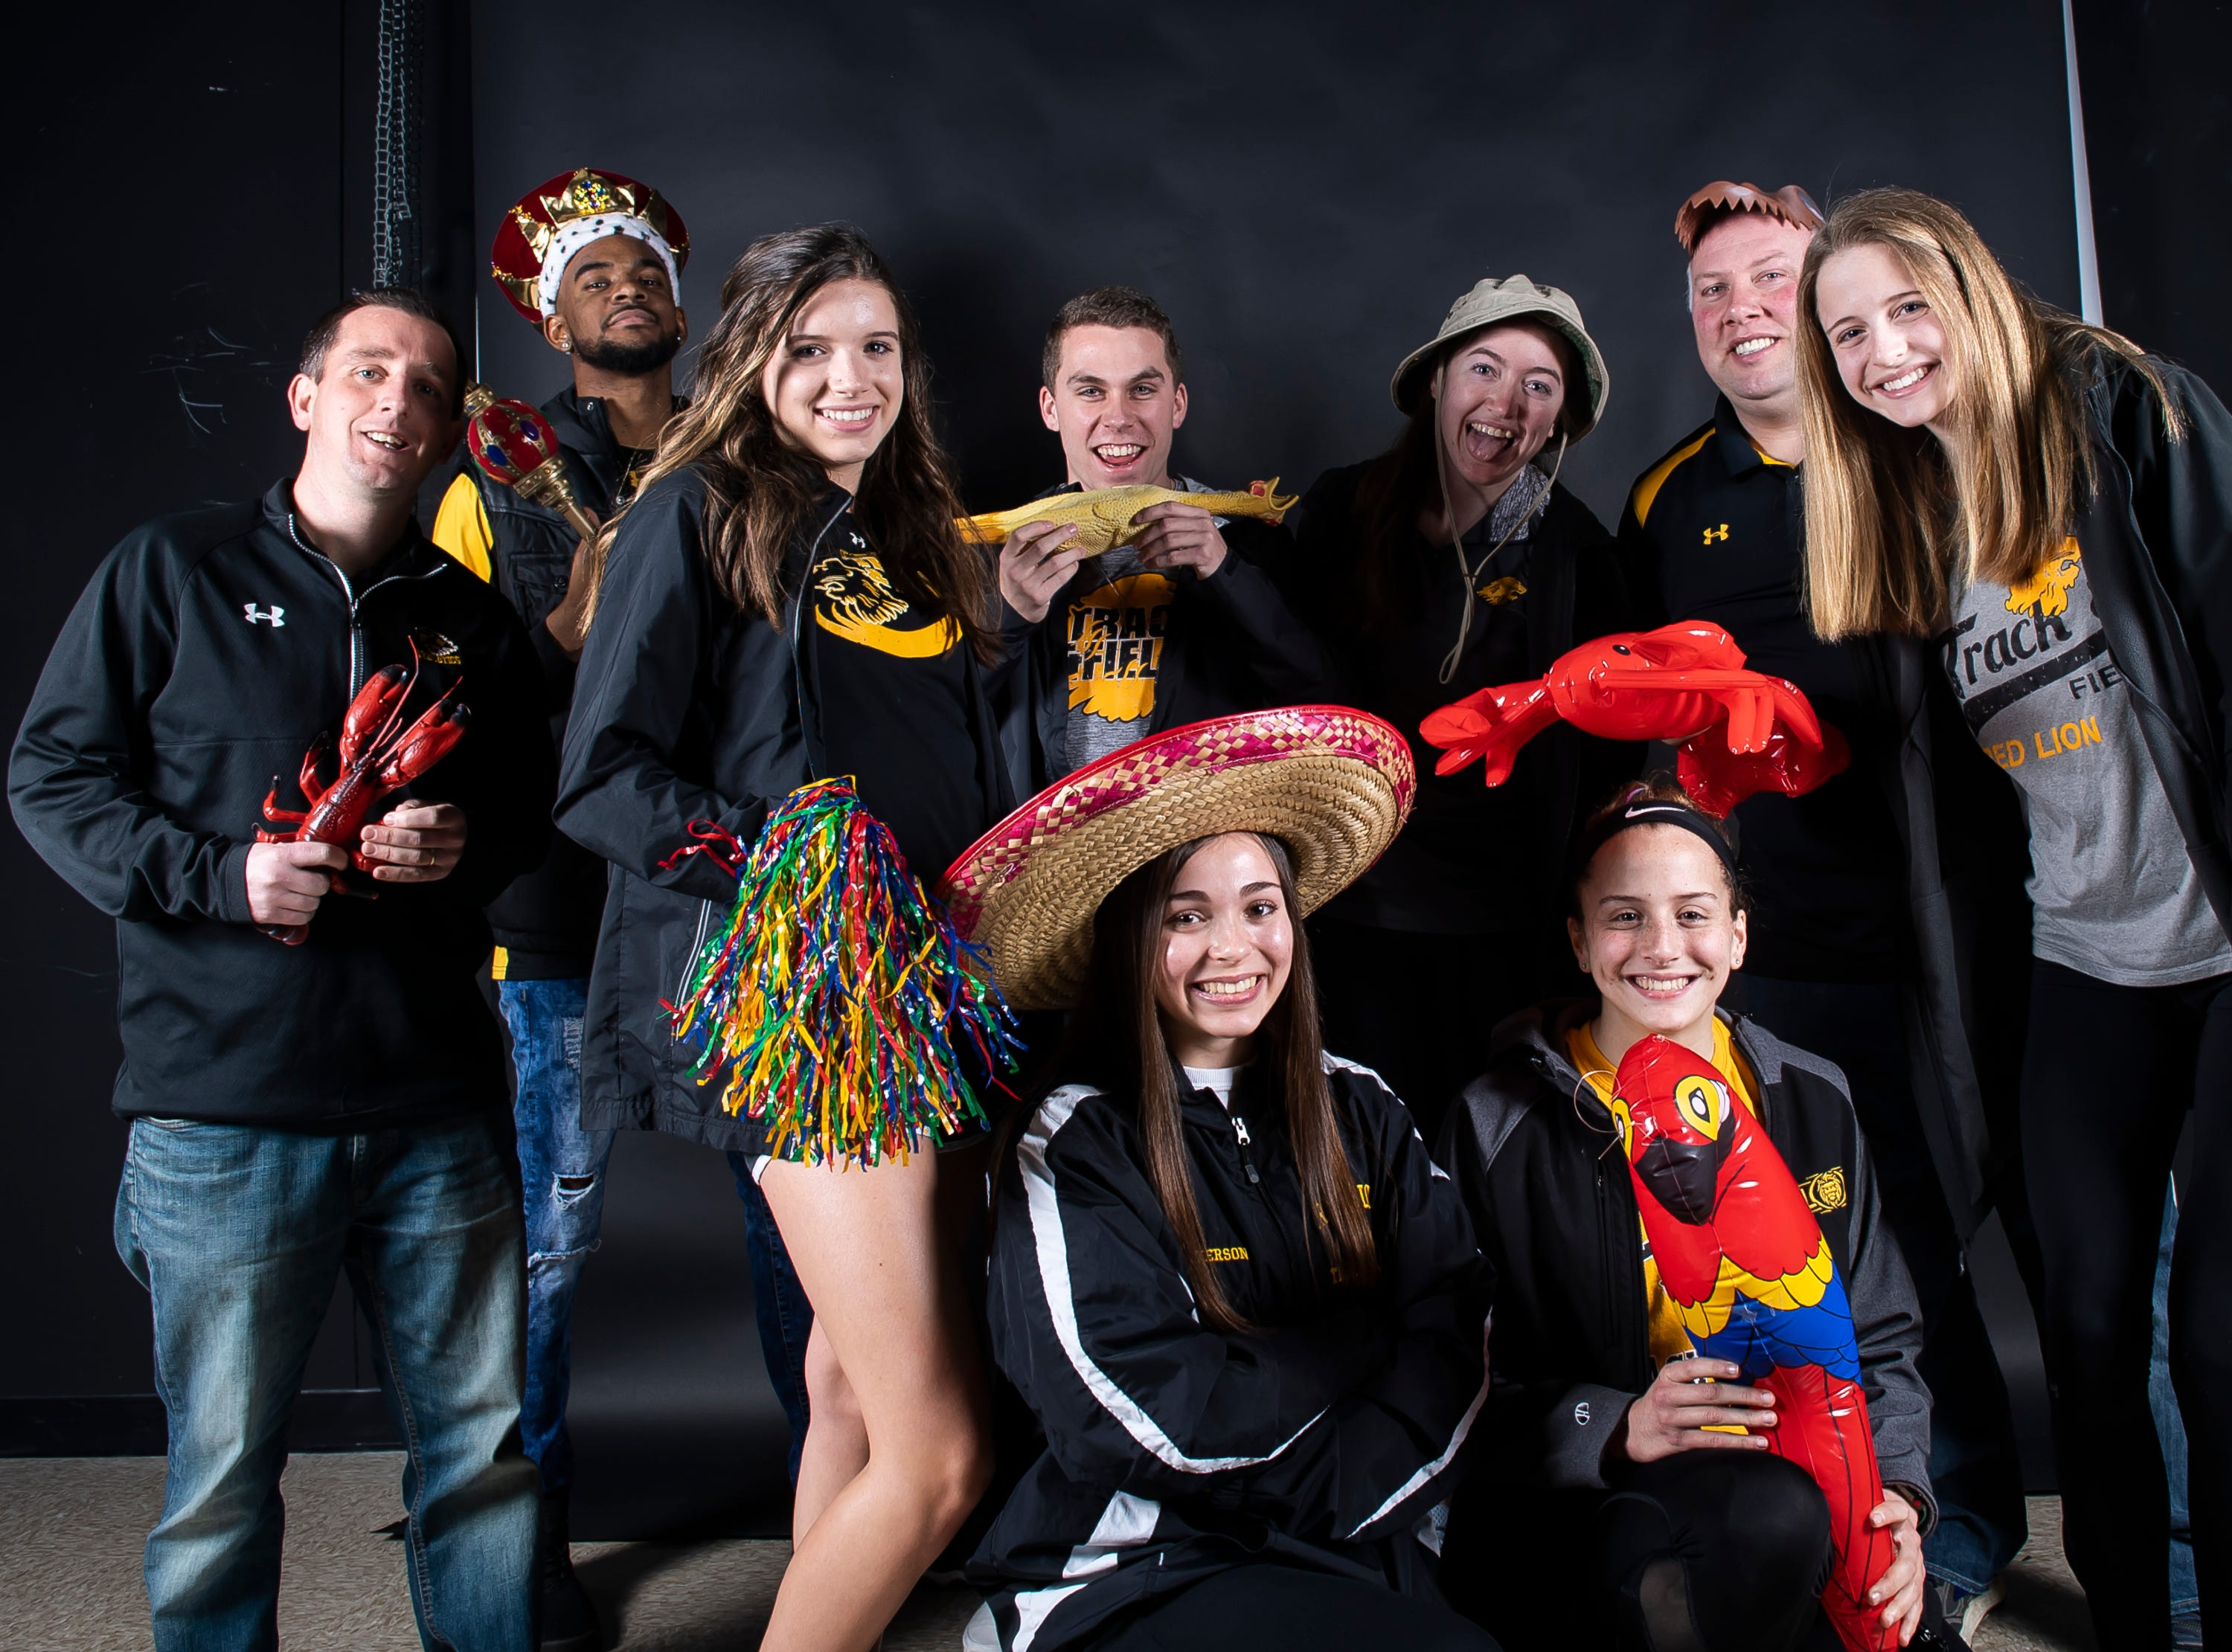 The Red Lion track and field team strike a pose in the GameTimePA photo booth during spring sports media day in York Sunday, March 10, 2019.